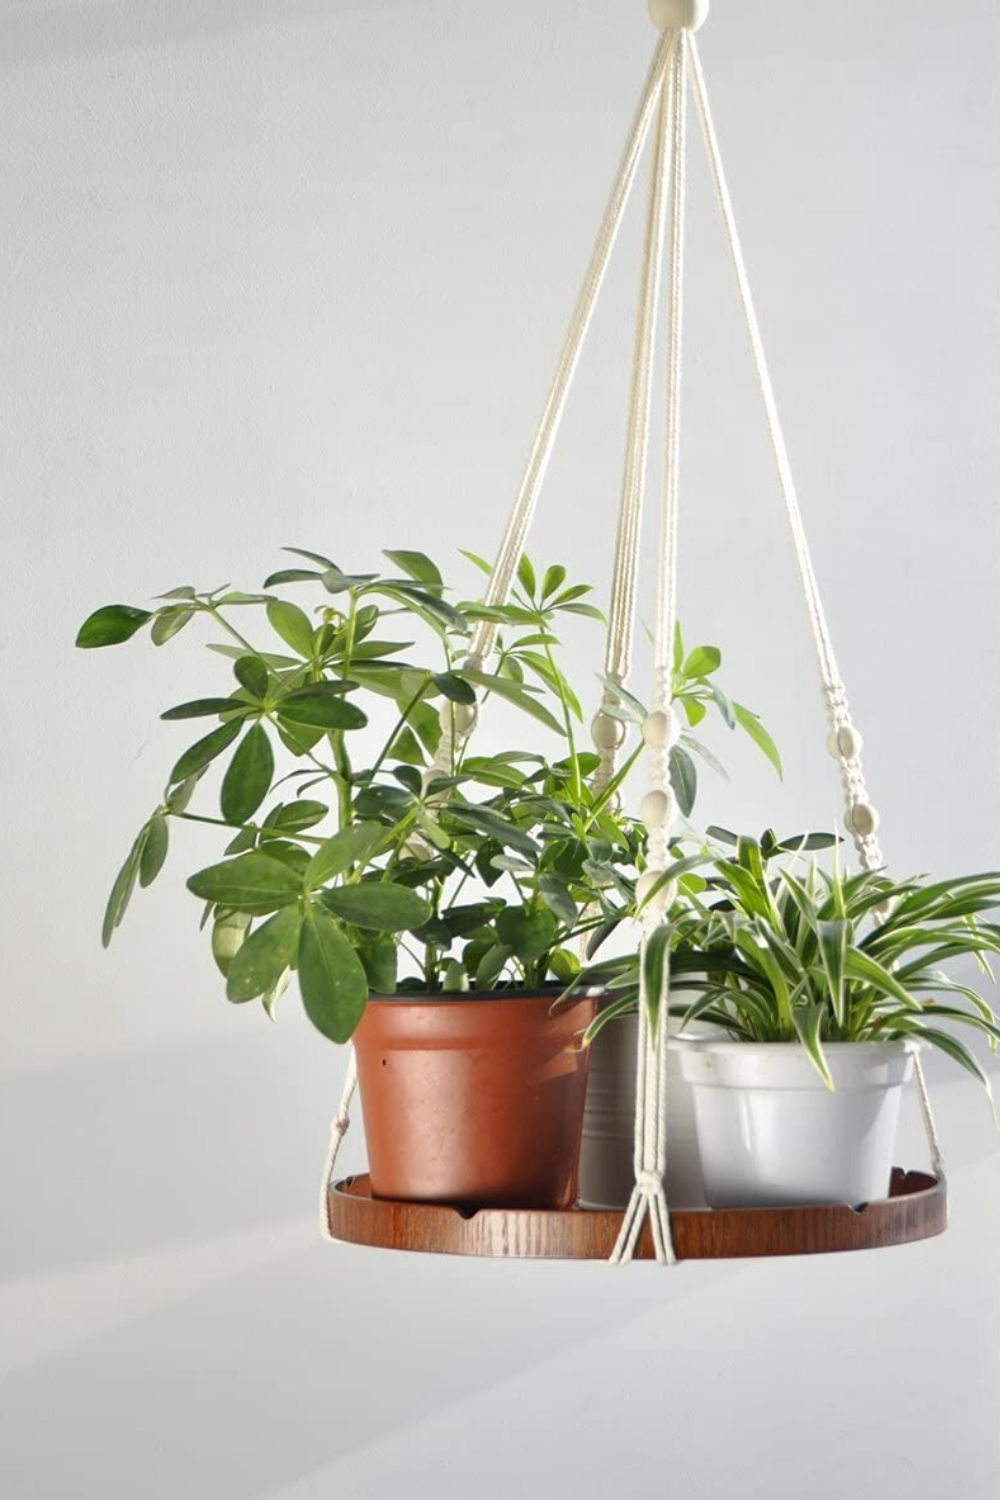 Amazon.com: TIMEYARD Macrame Plant Shelf Hangers - Indoor Hanging Planter Decorative Pot Holder, Handmade Boho Chic Home Decor with Wood Beads: Garden & Outdoor